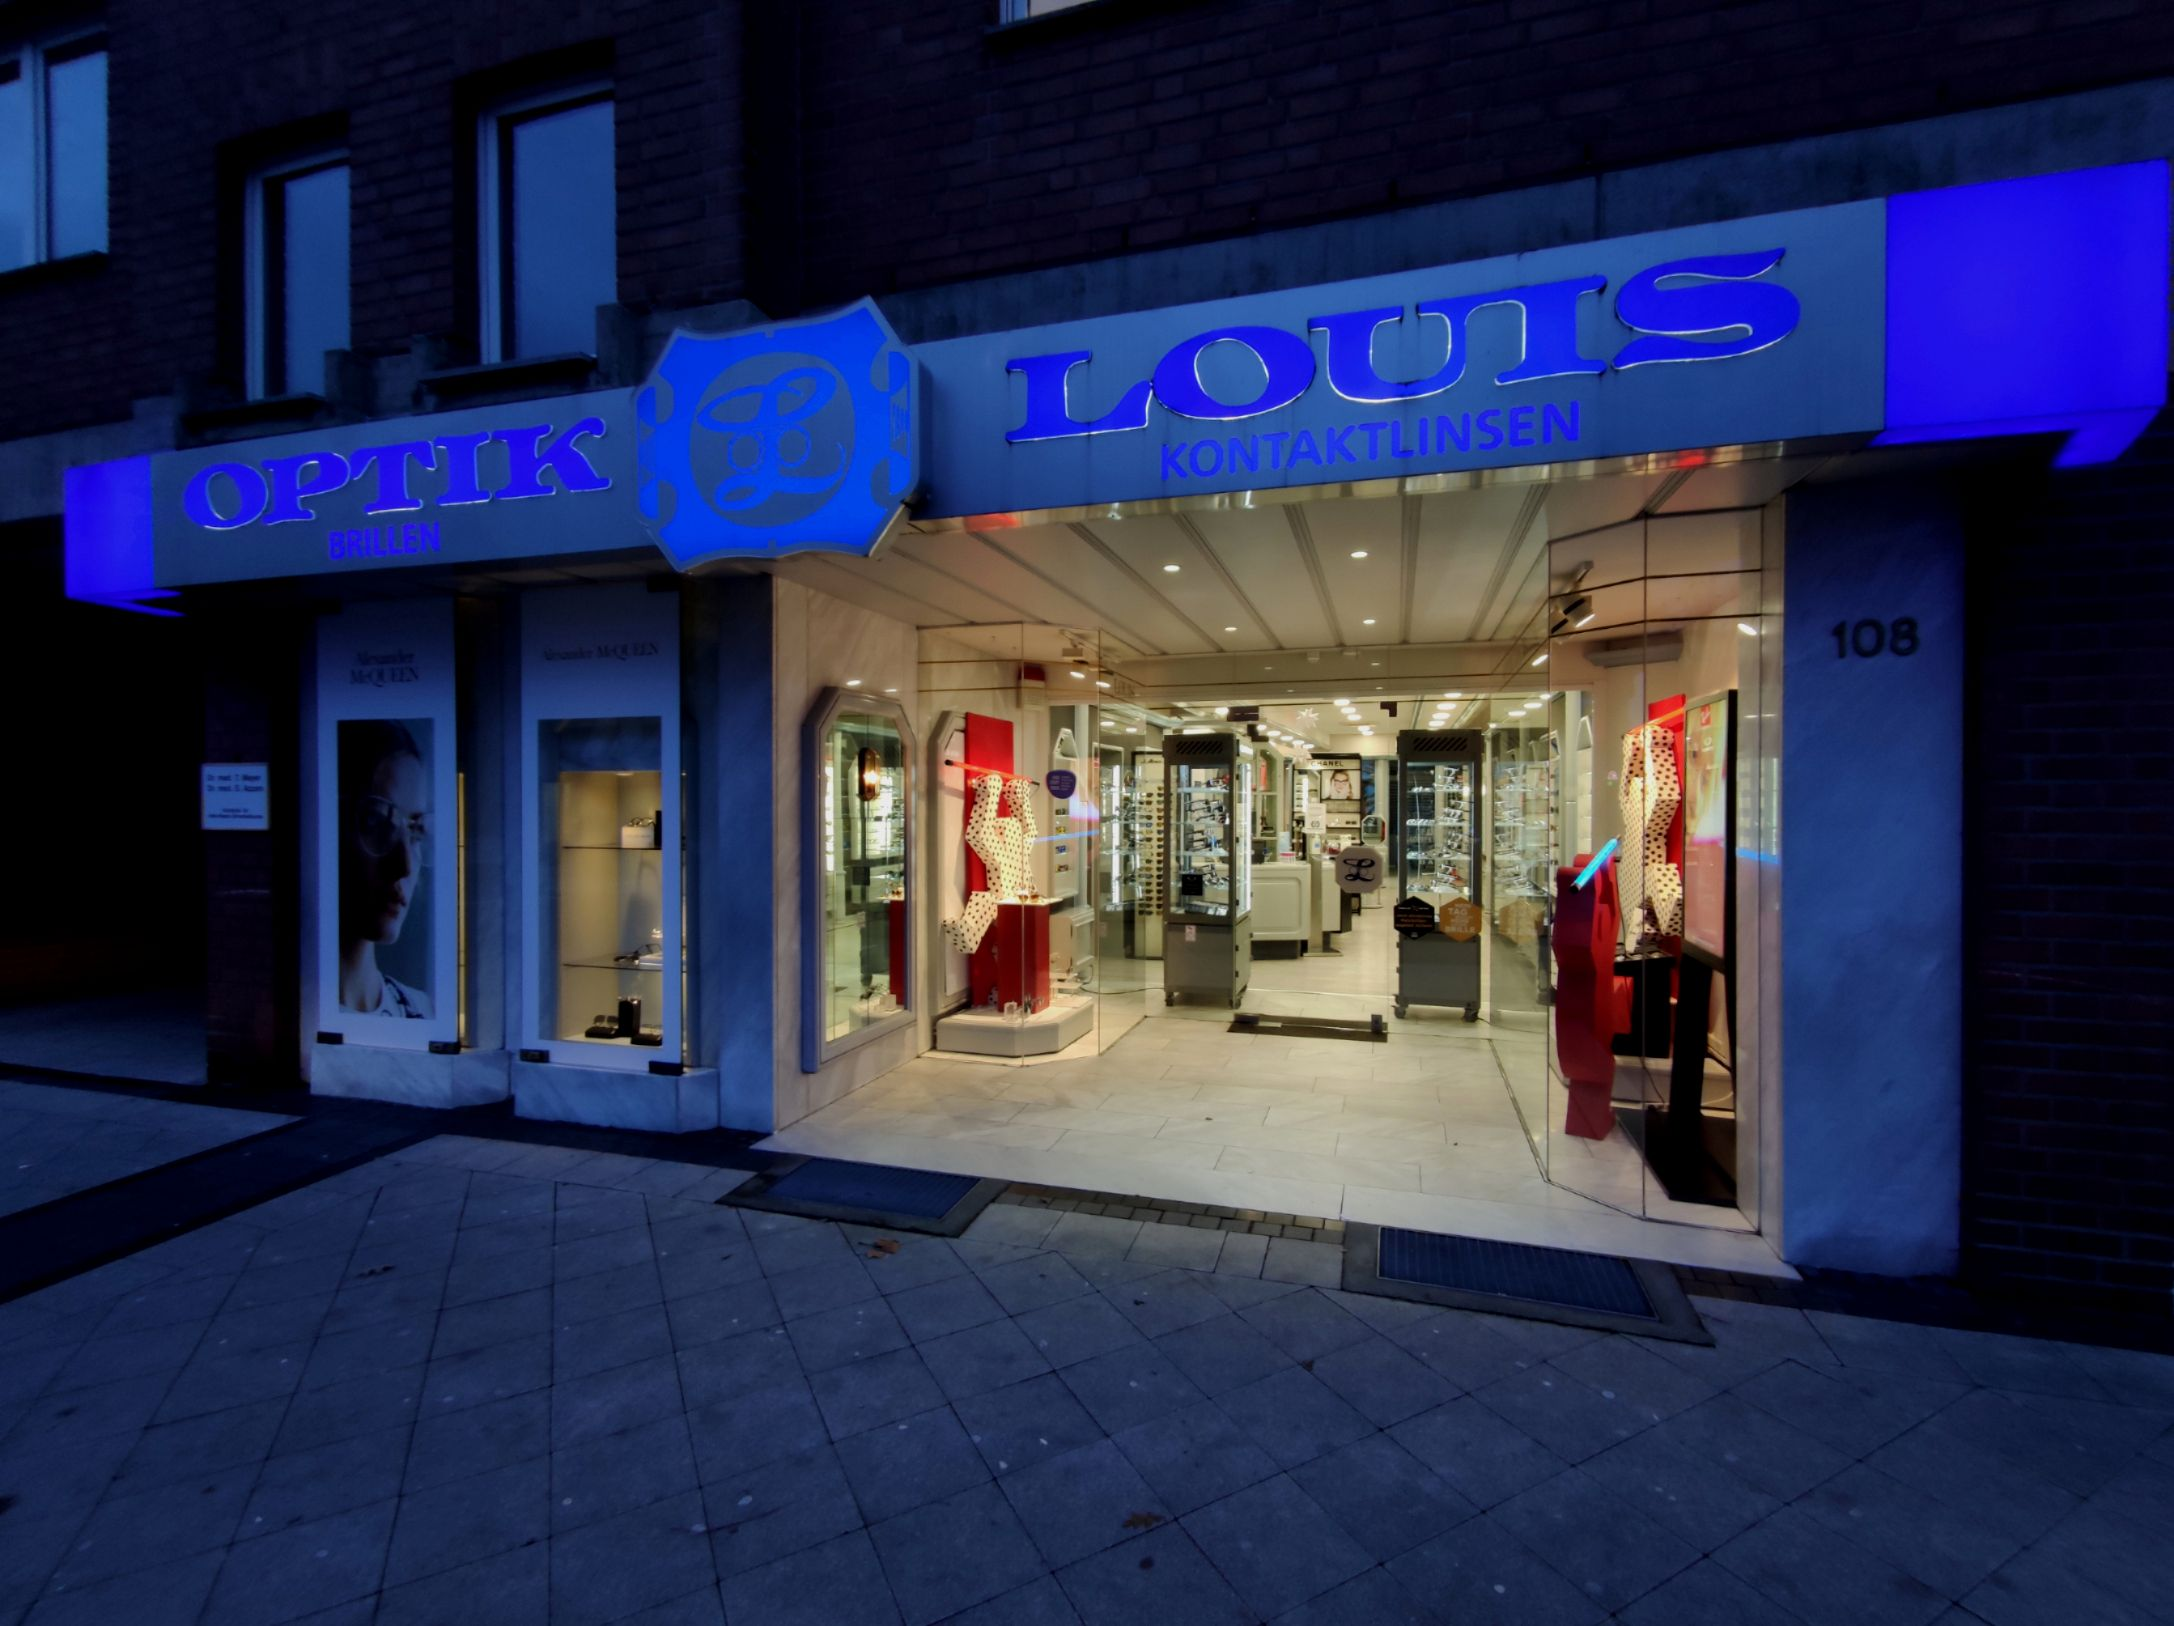 Optik Louis Geilenkirchen